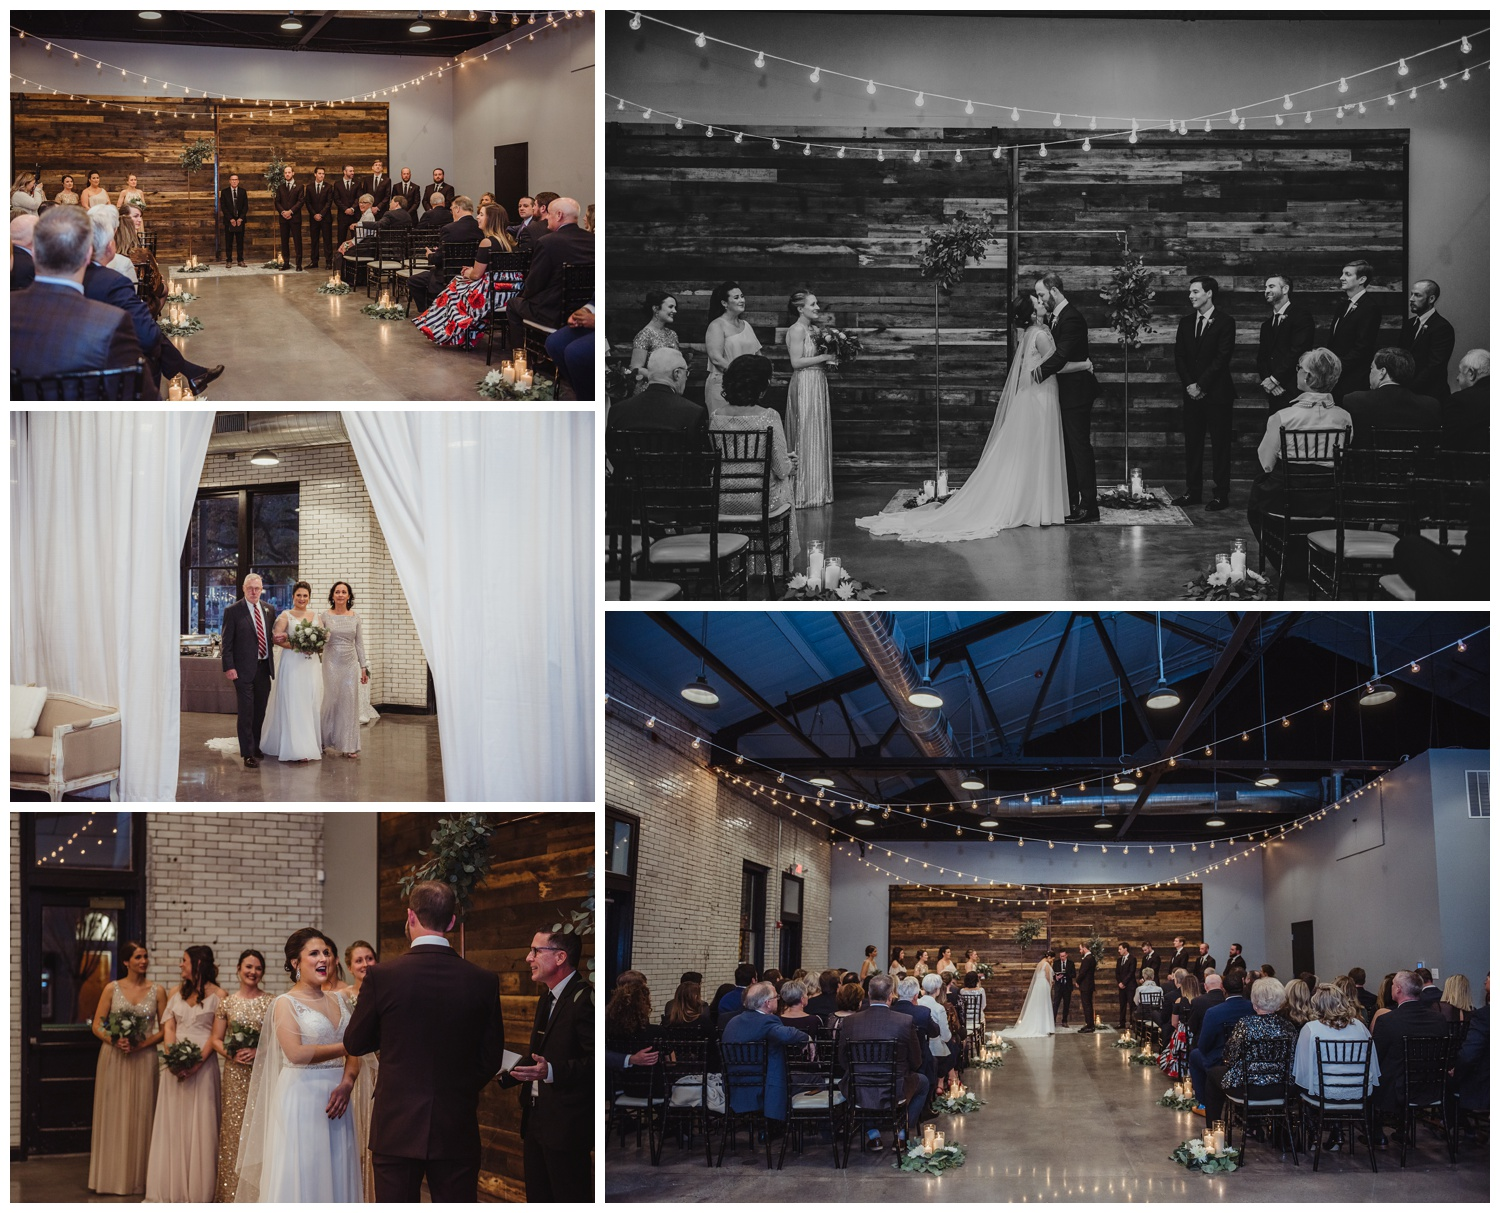 The bride and groom exchange vows during their indoor wedding ceremony in downtown Raleigh, photos by Rose Trail Images.